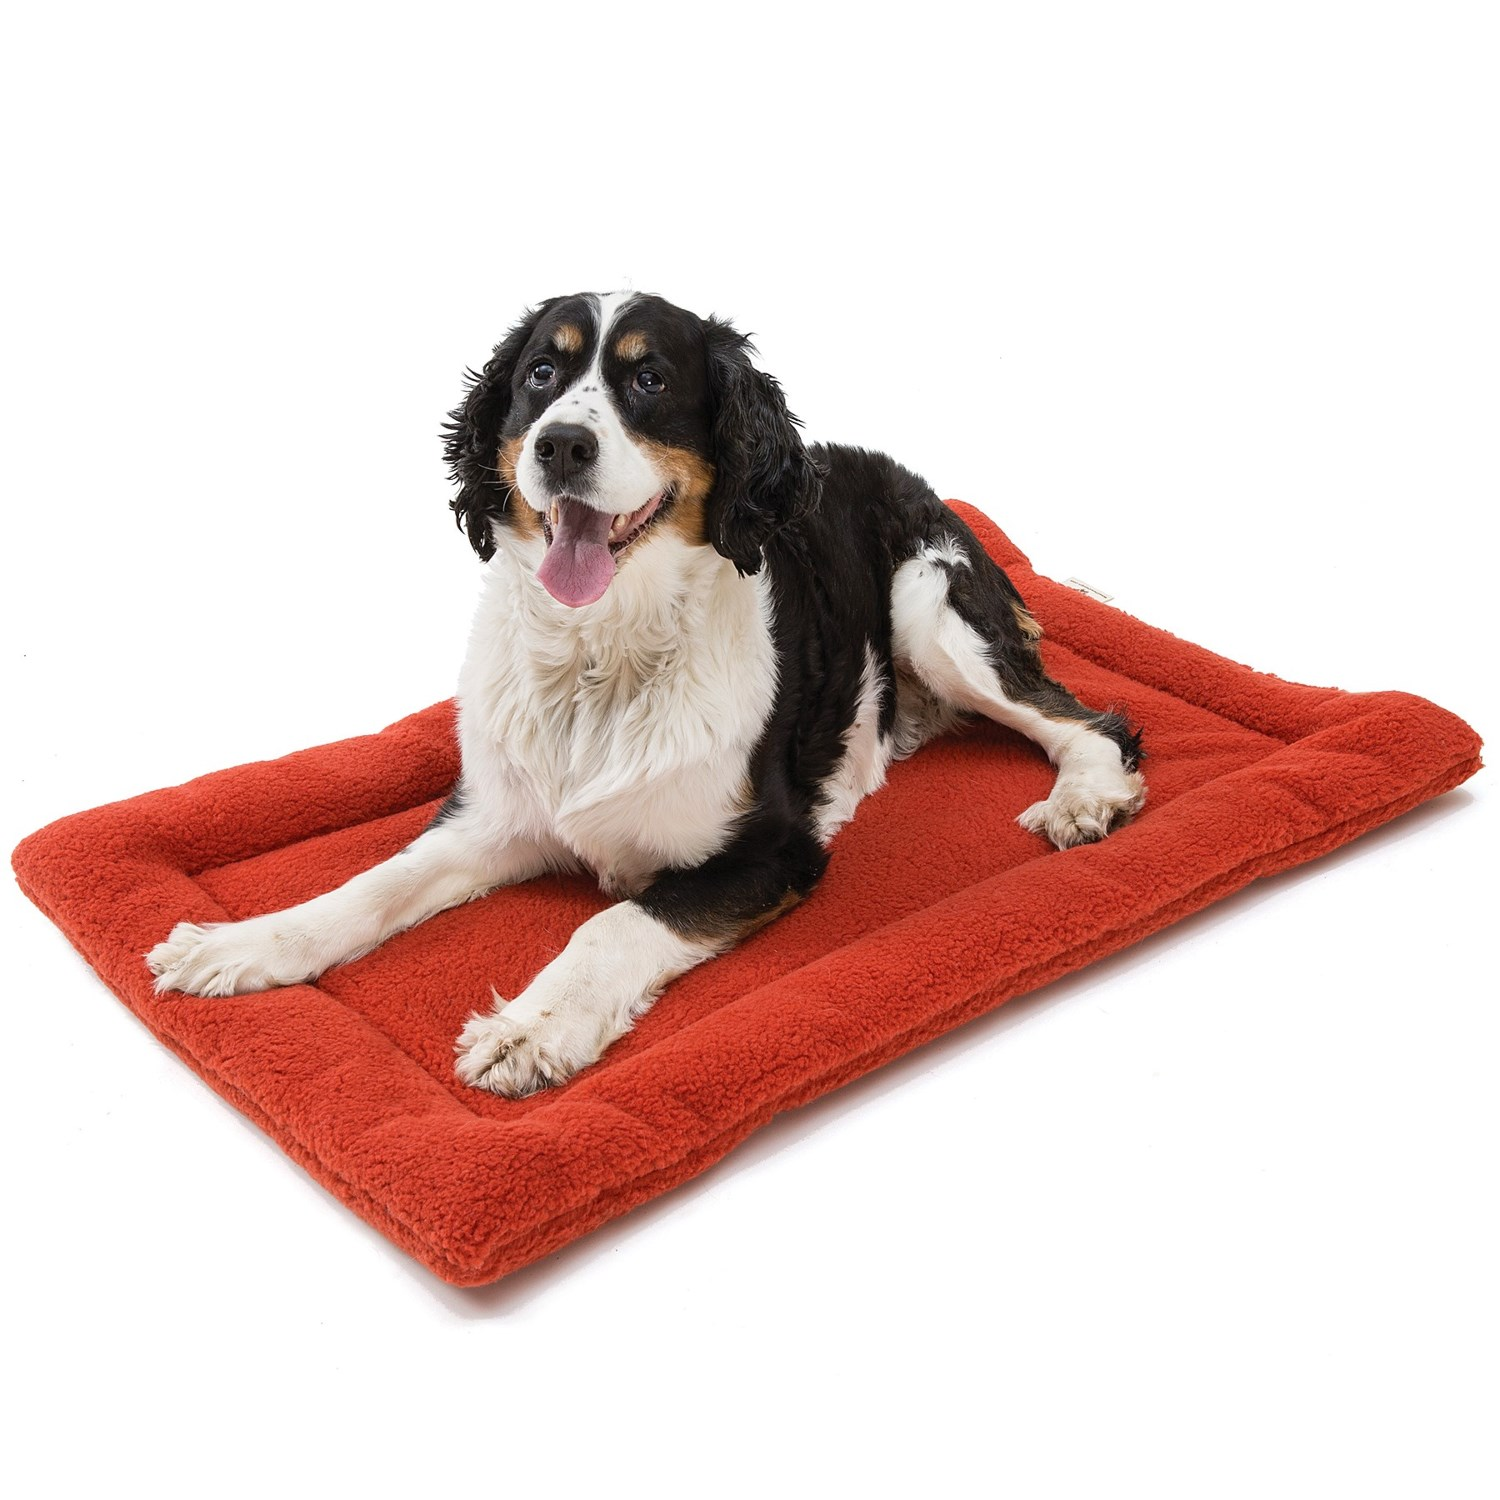 West Paw Dog Bed Reviews